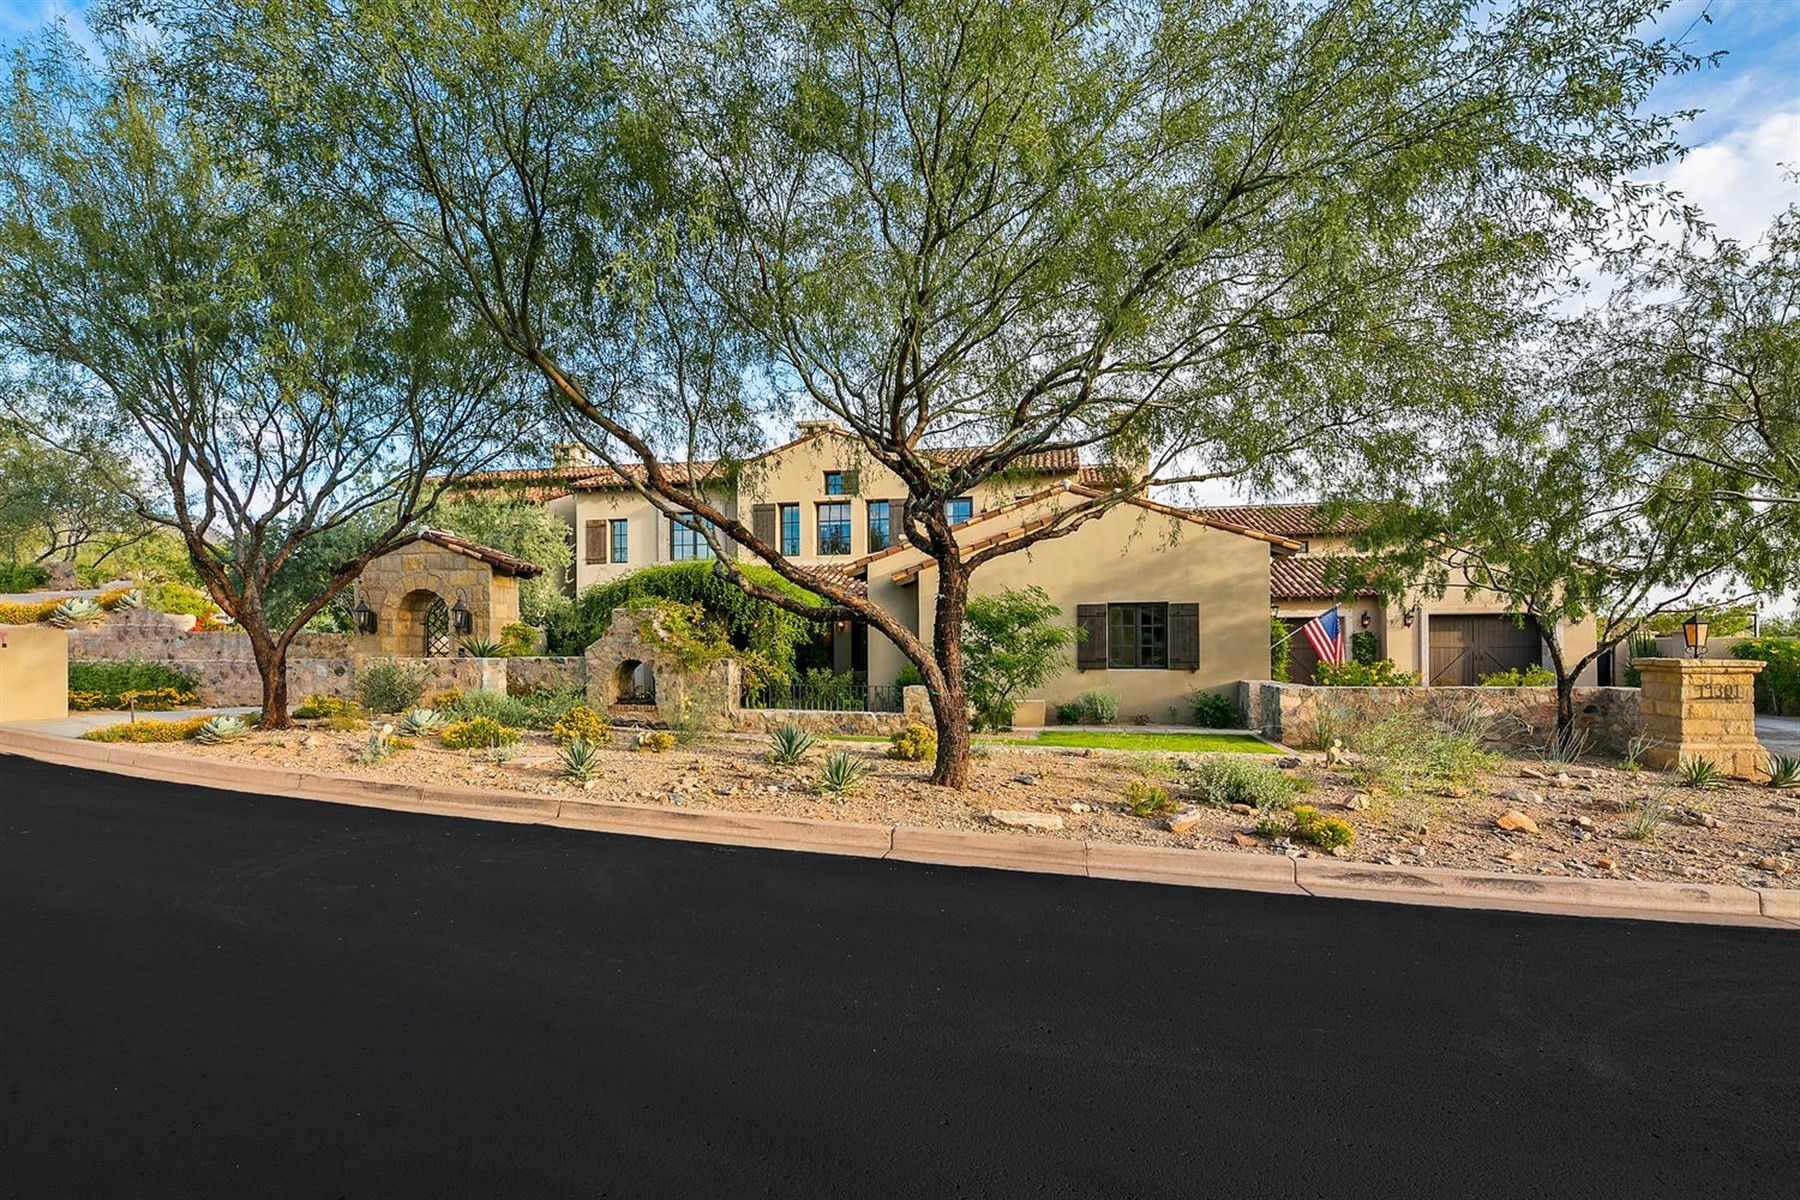 Single Family Homes for Active at Silverleaf Horseshoe Canyon 19301 N 100TH WAY Scottsdale, Arizona 85255 United States